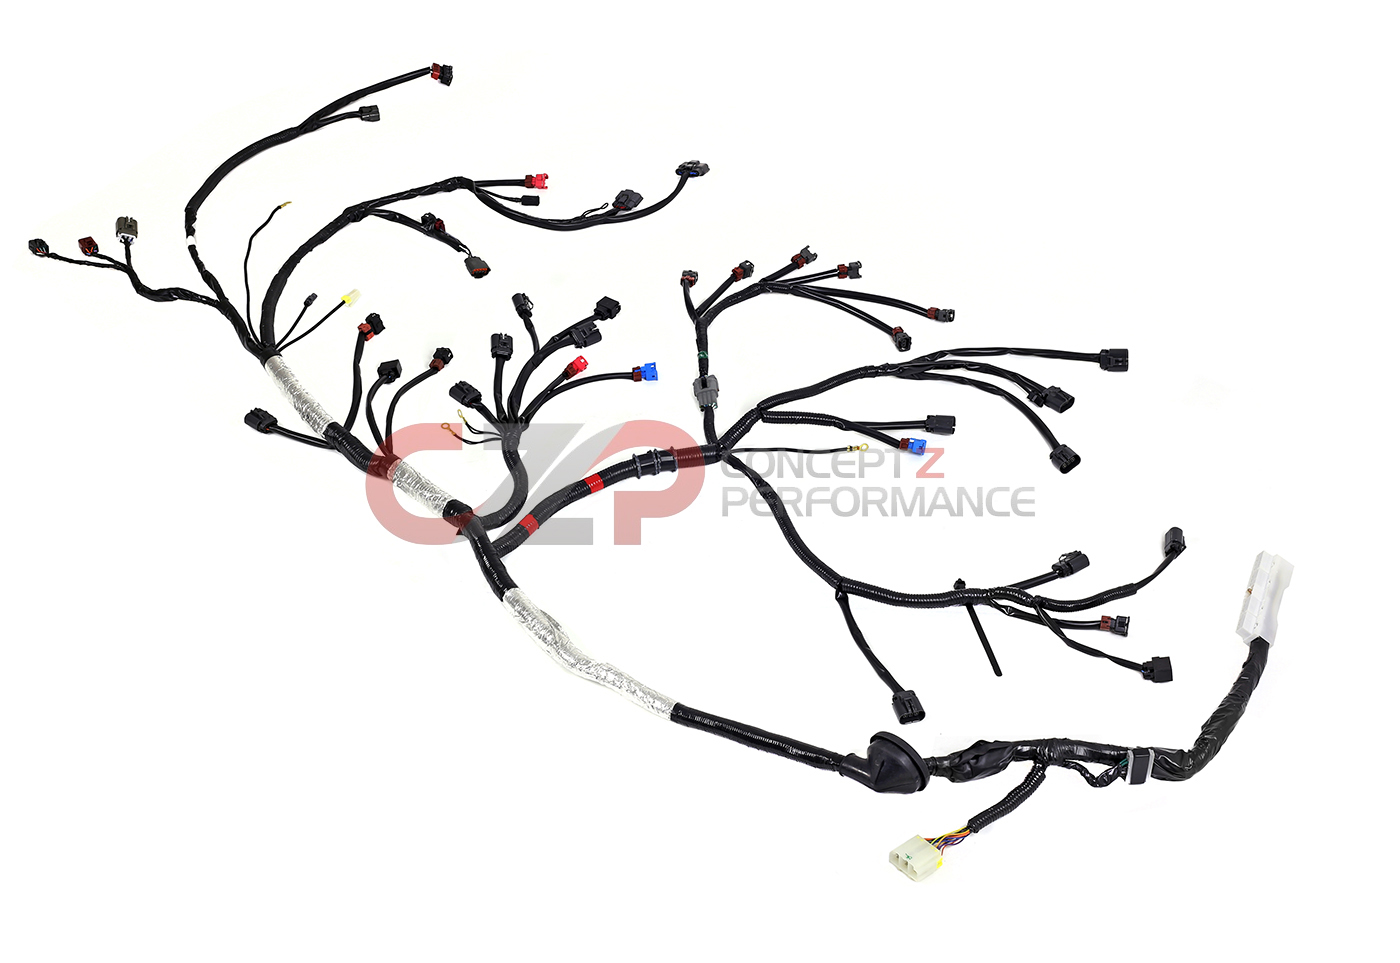 300zx z32 wiring harness with Wiring Specialties 300zx Engine Harness 90 95 Z32 on 1990 300zx Engine Wiring Harness as well 300zx Ecu Wiring Diagram likewise 300zx Engine Wiring Harness Diagram as well Nissan 300zx Wiring Harness furthermore 300zx Engine Diagram.